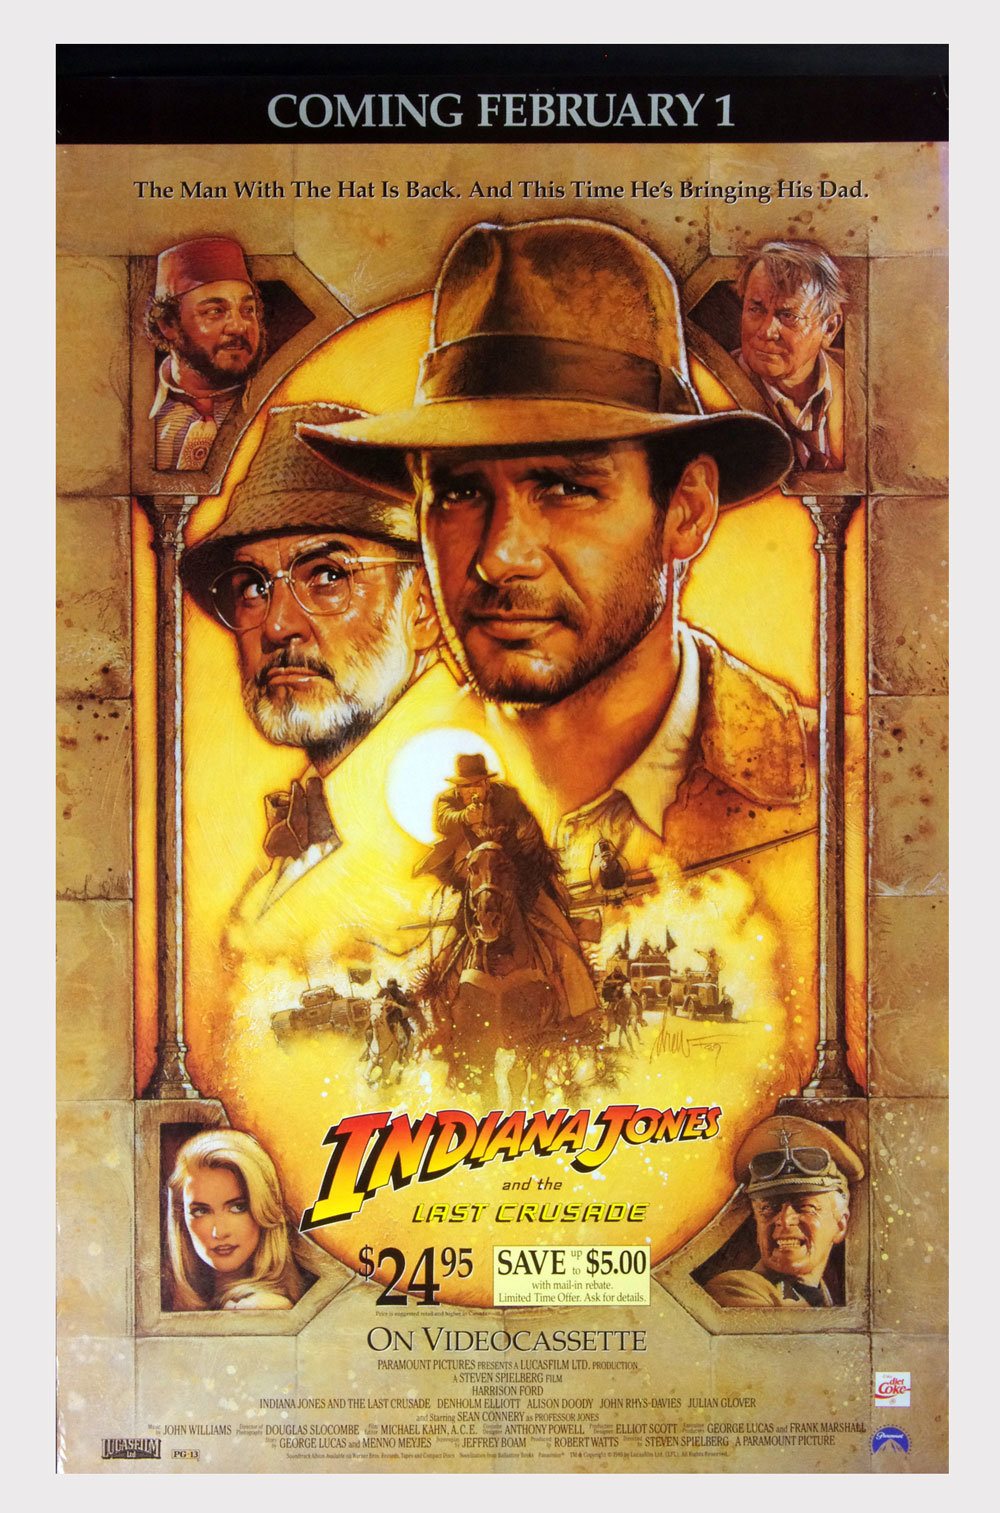 Indiana Jones and the Last Crusade Poster 1989 Harrison Ford Home Video Promo 27 x 42